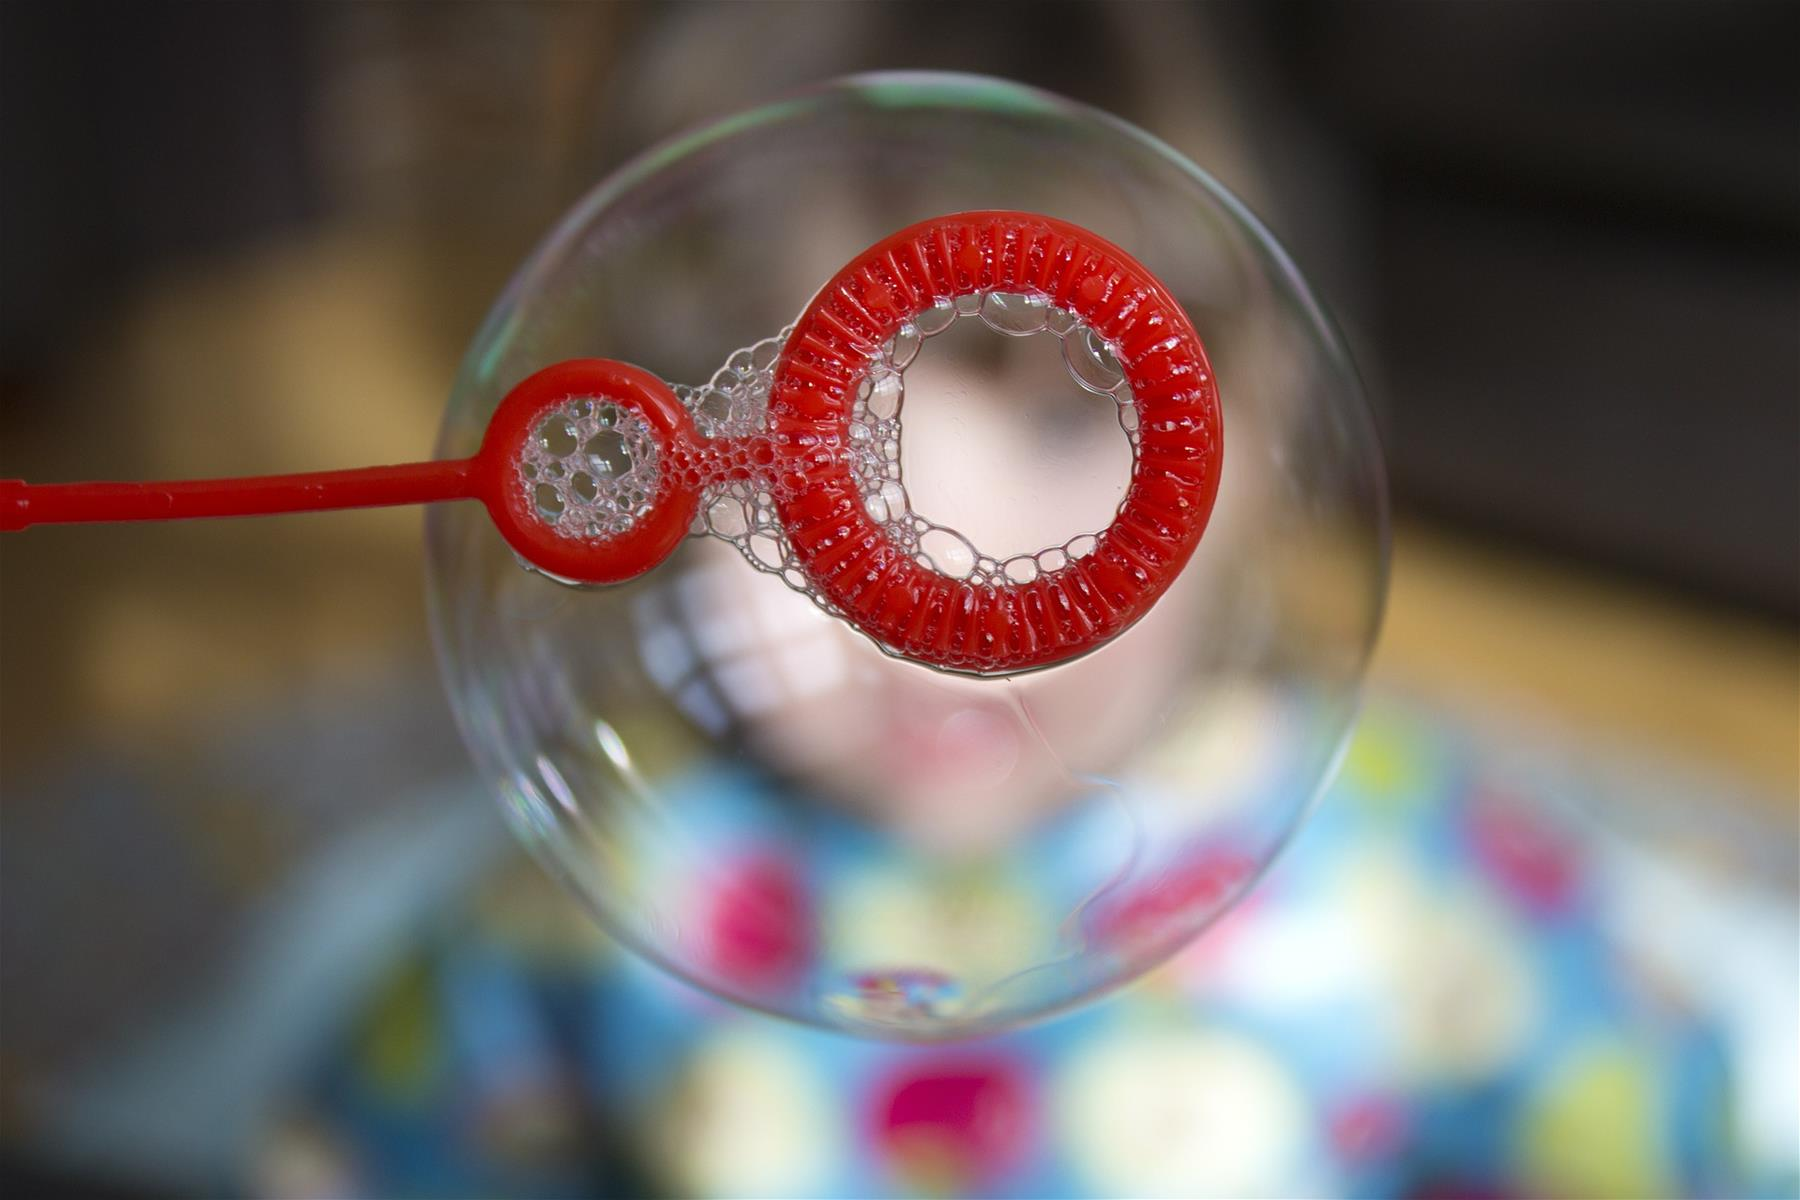 soap-bubble-439103_1920.jpg